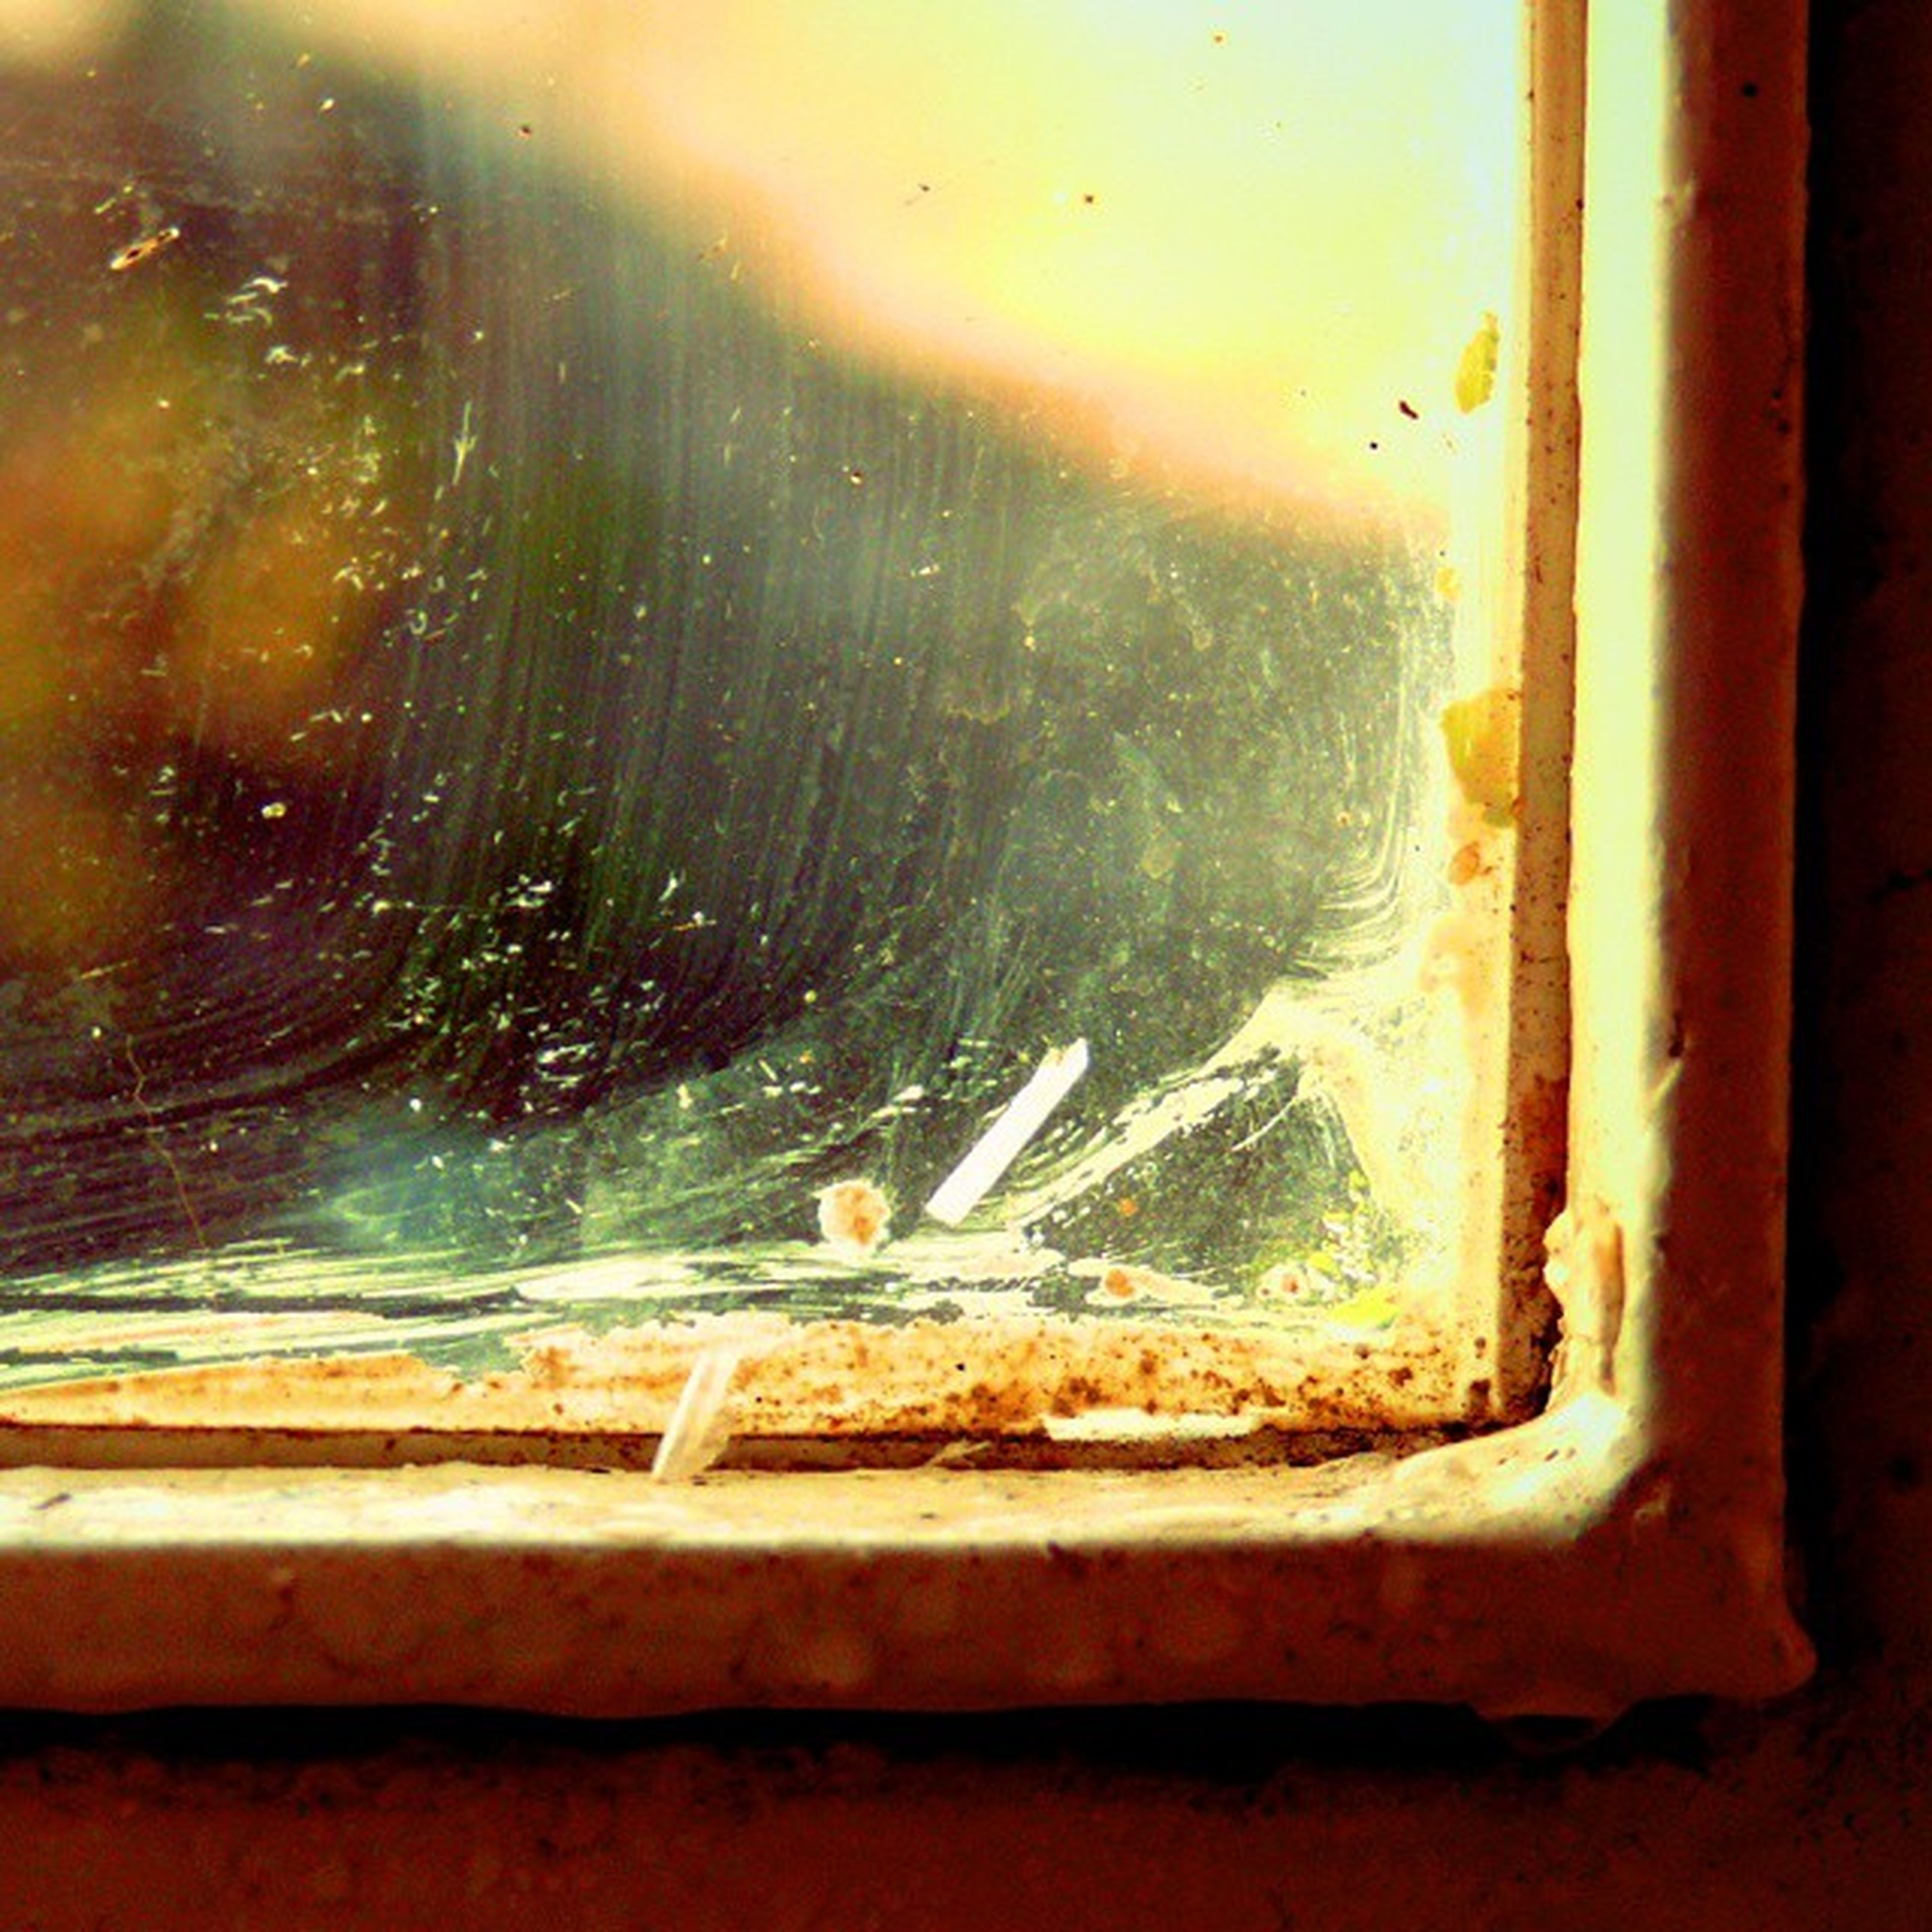 window, indoors, glass - material, transparent, water, close-up, wet, drop, built structure, architecture, no people, day, focus on foreground, sky, damaged, glass, nature, abandoned, rain, sunlight